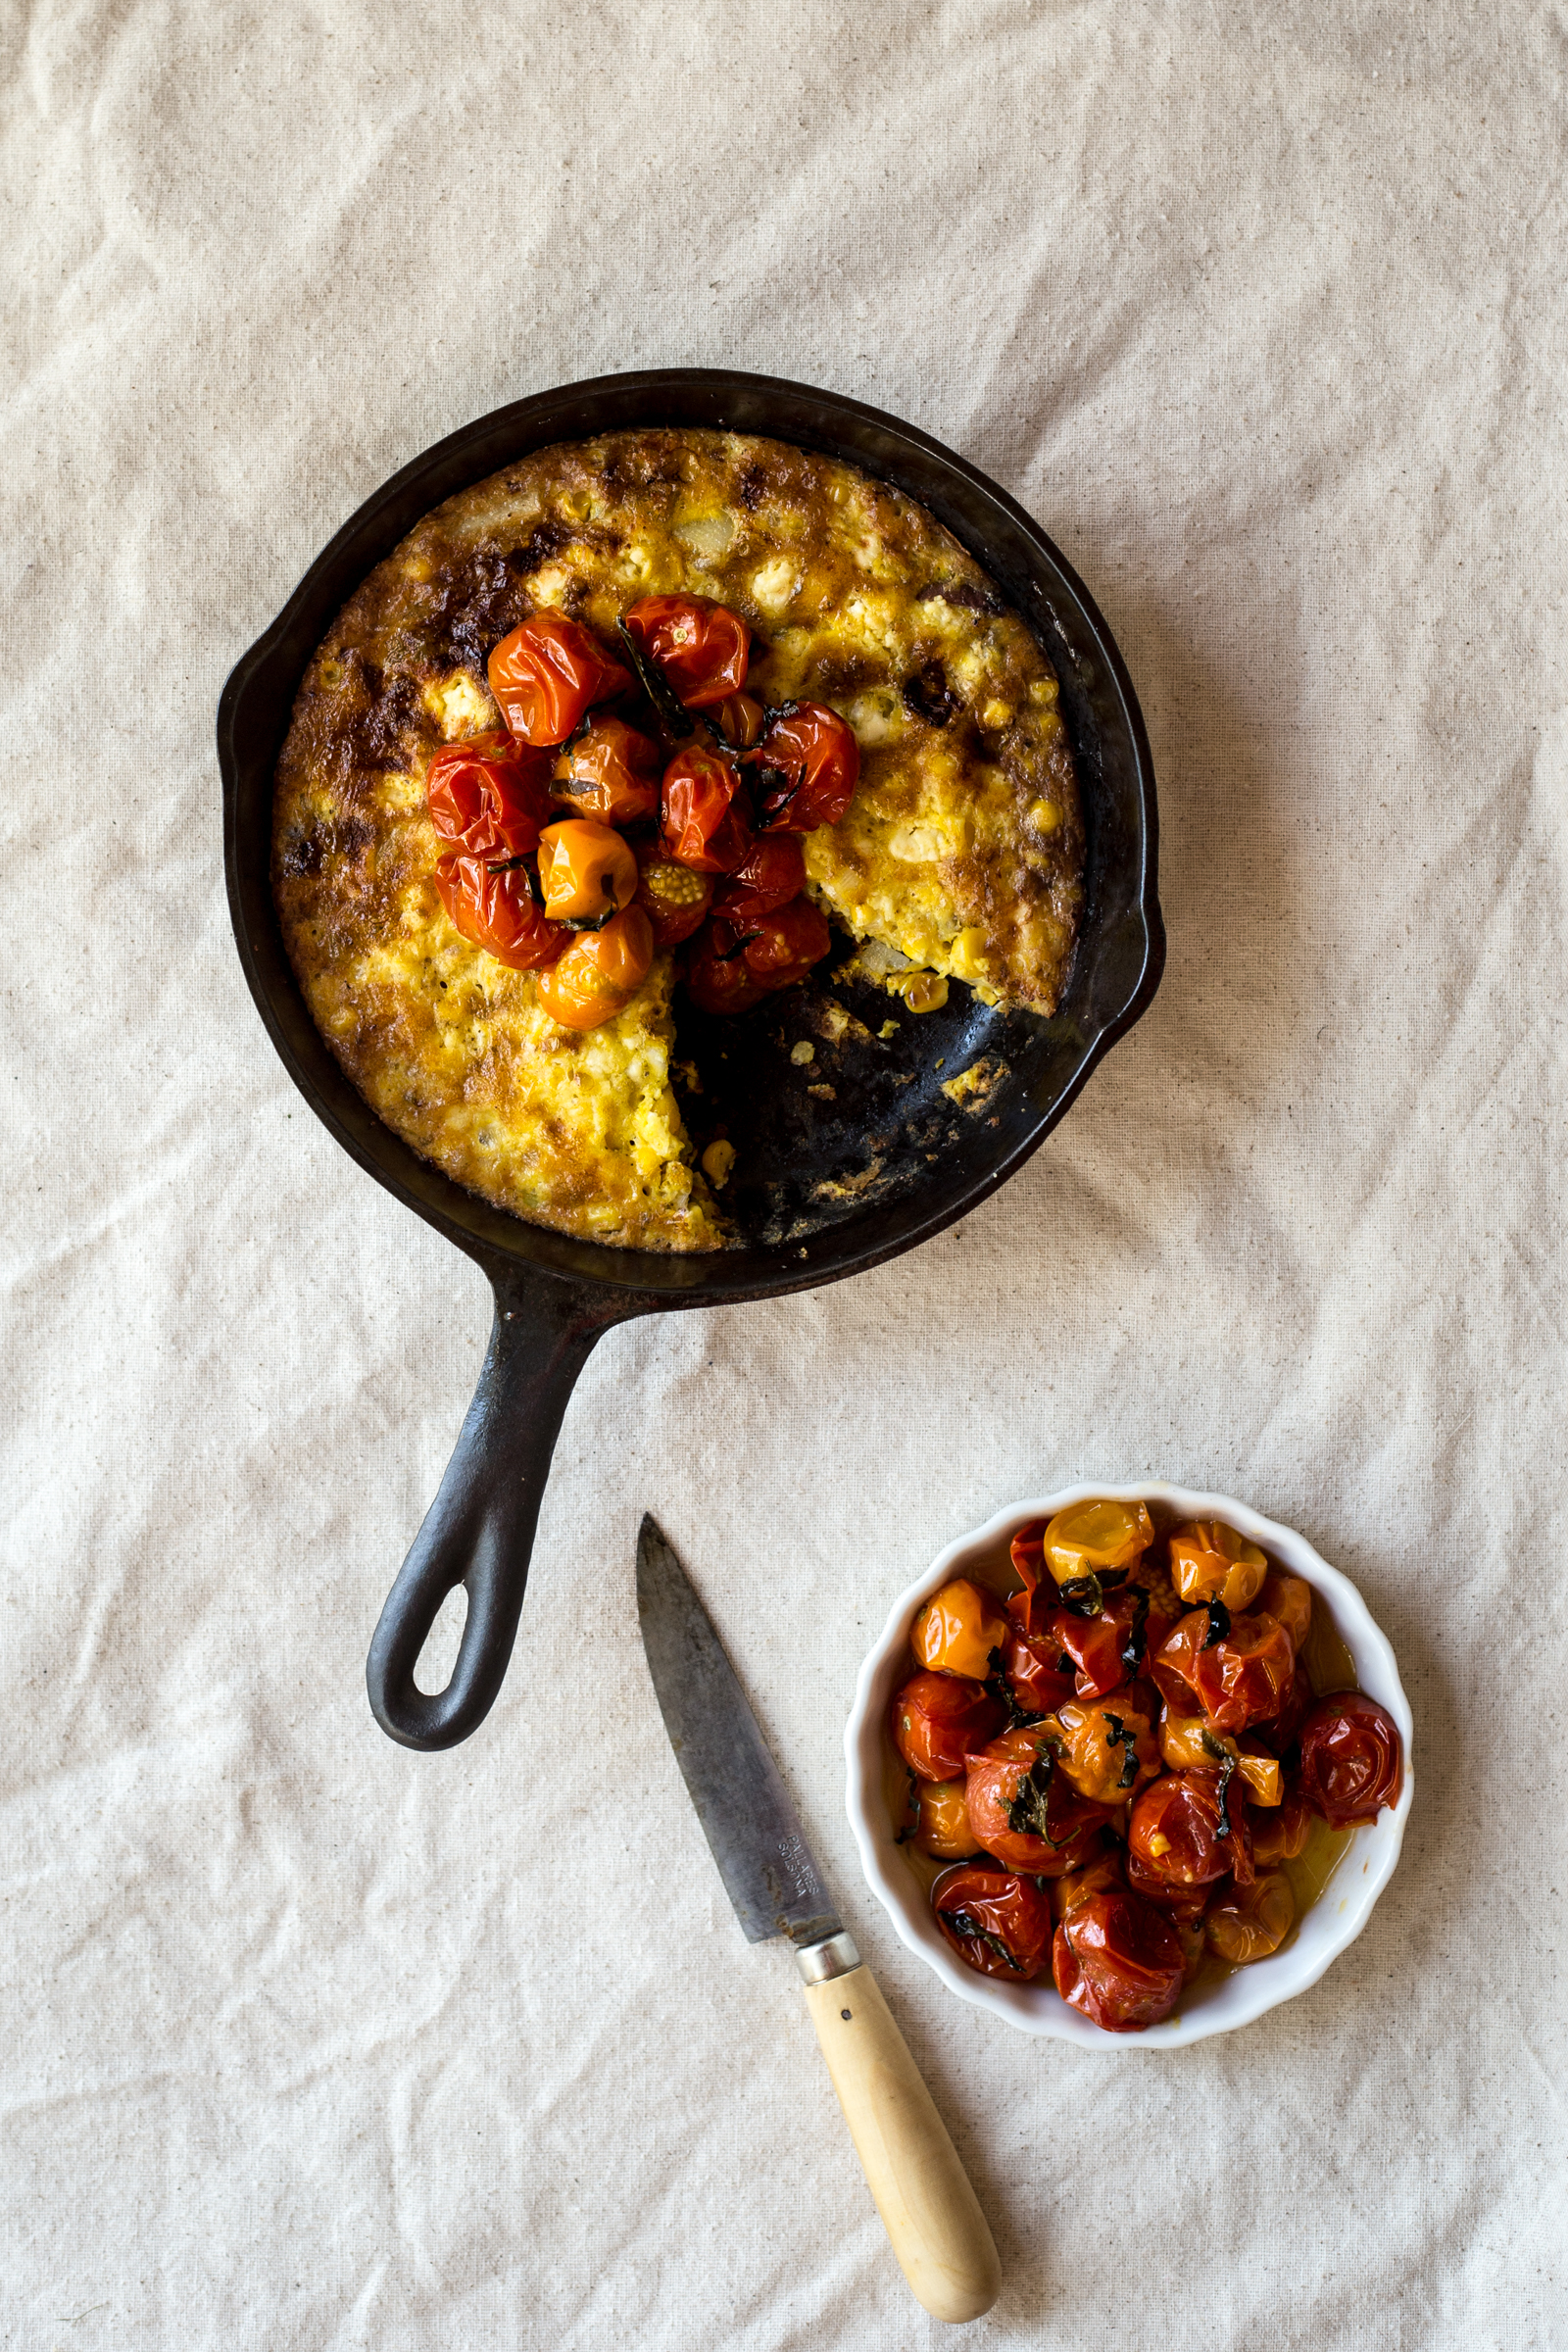 Sweet Corn & Scallion Frittata with Cherry Tomato Compote